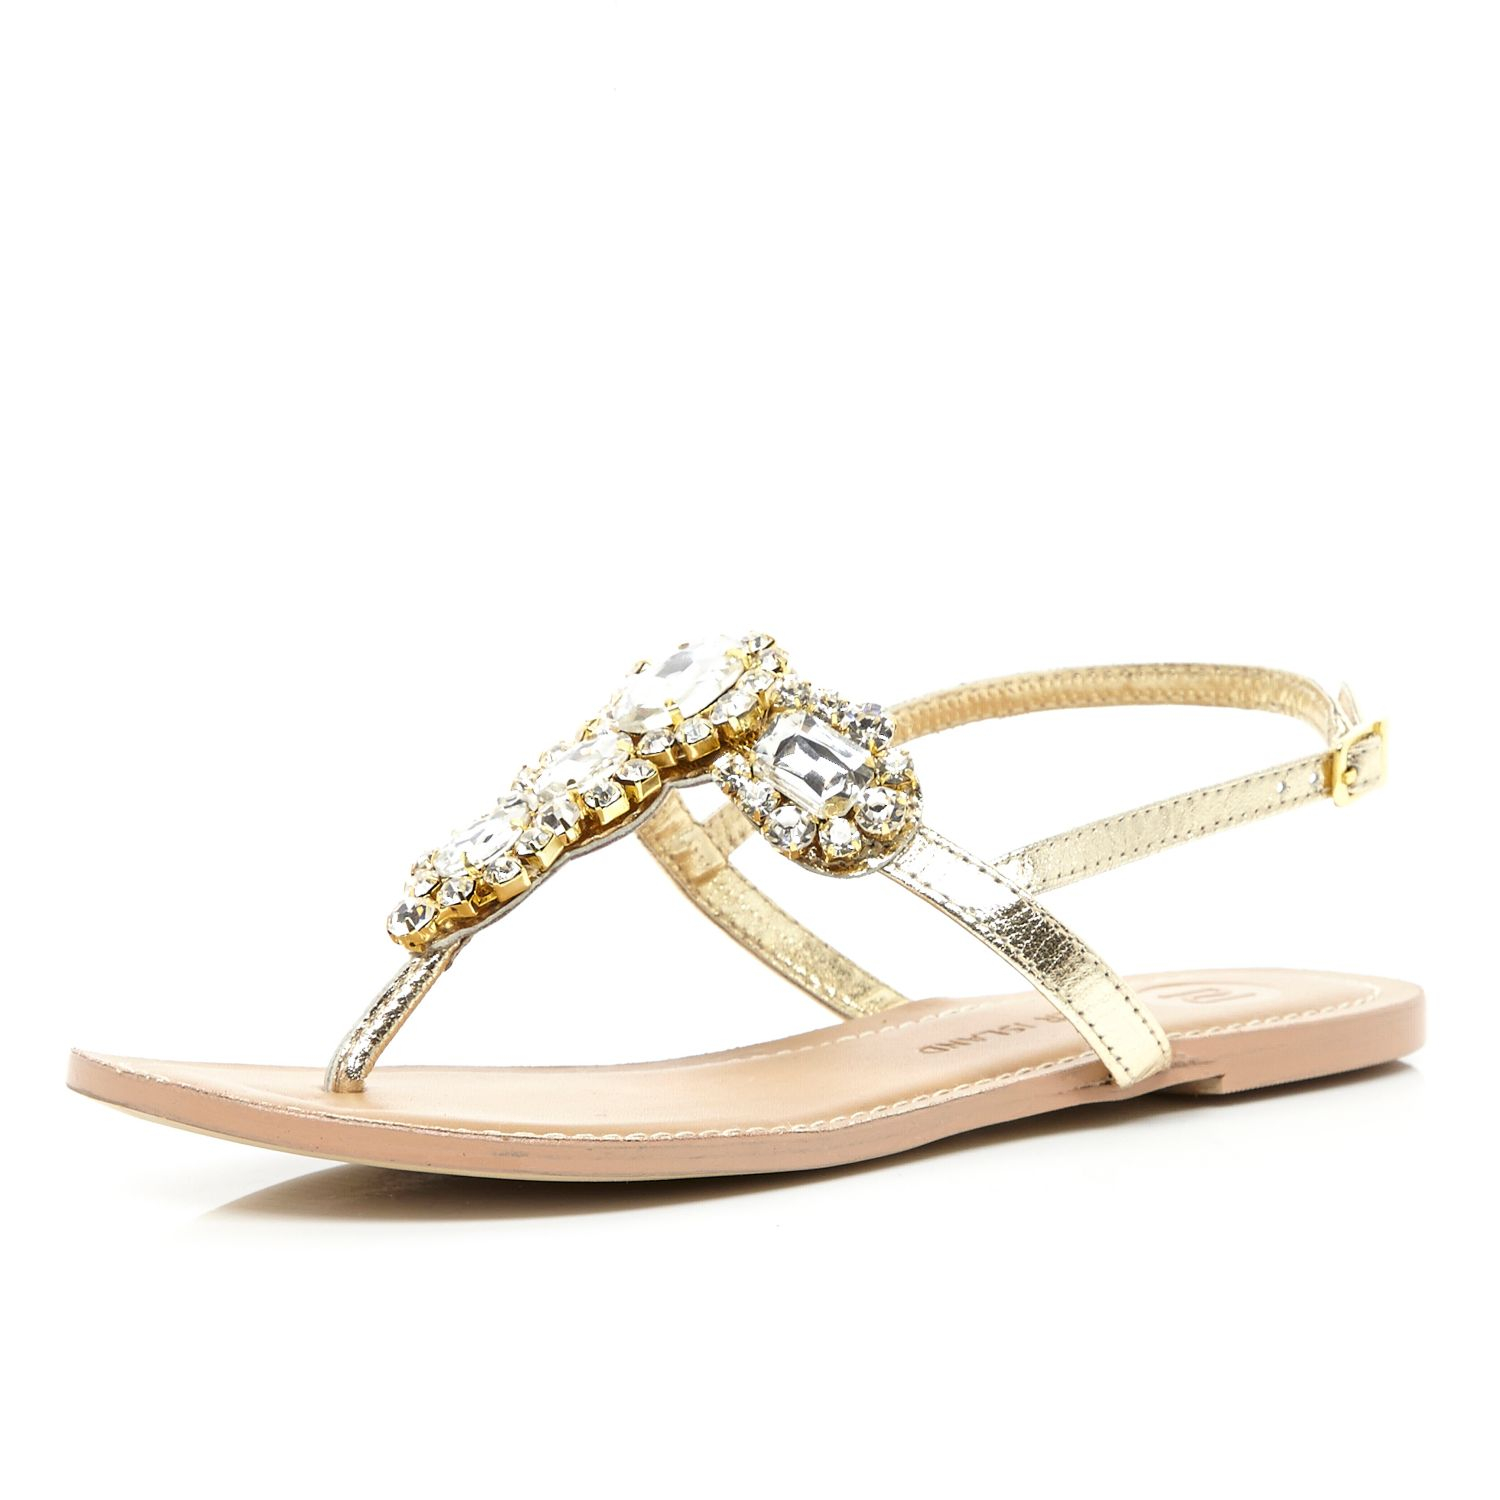 c4856429ff1 River Island Gold Jewel Embellished T Bar Sandals in Metallic - Lyst